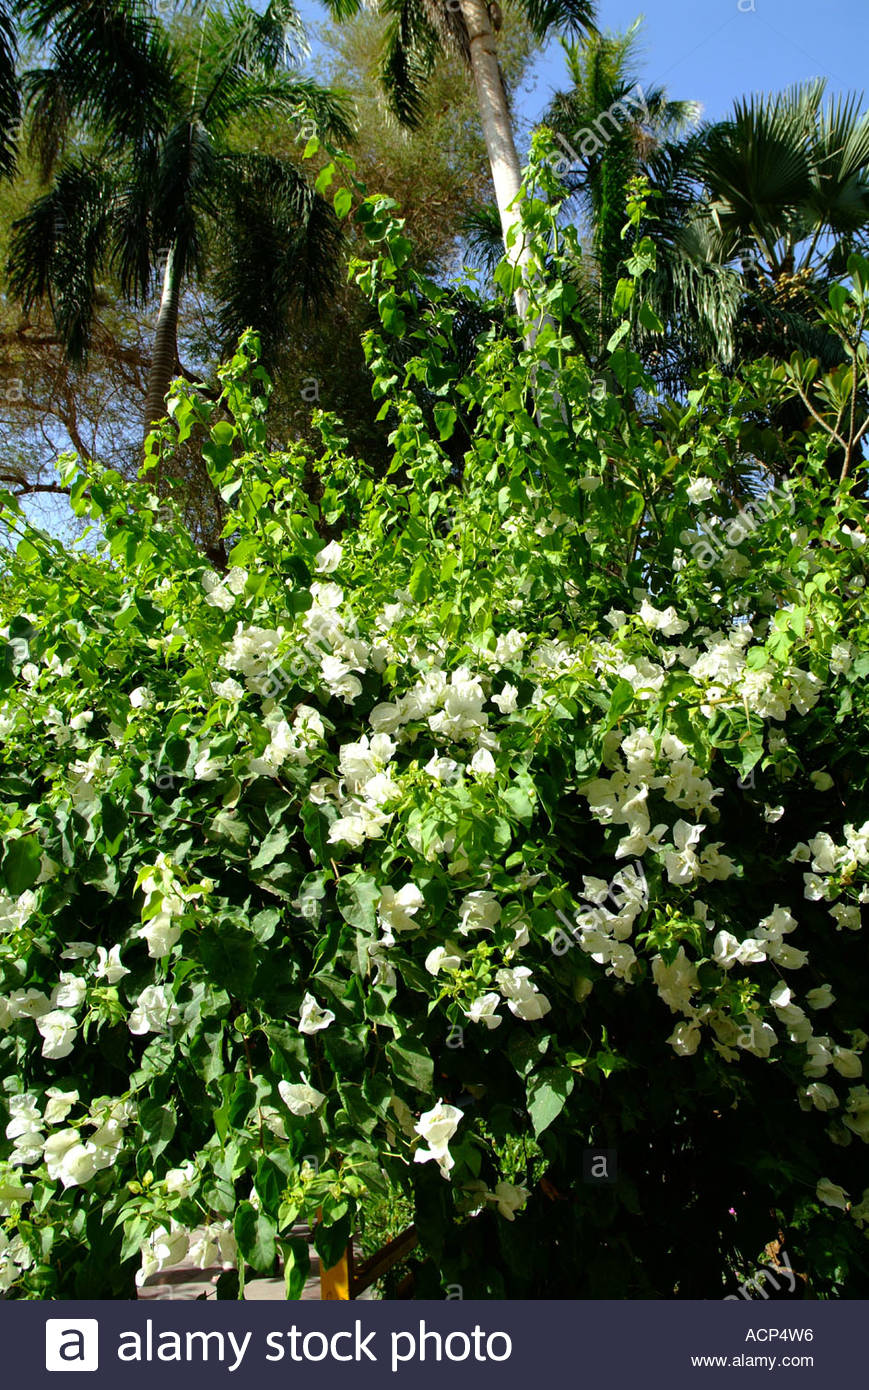 Nice climbing plant with white flowers images images for wedding colourful climbing plant with white flowers on plantation or stock mightylinksfo Gallery